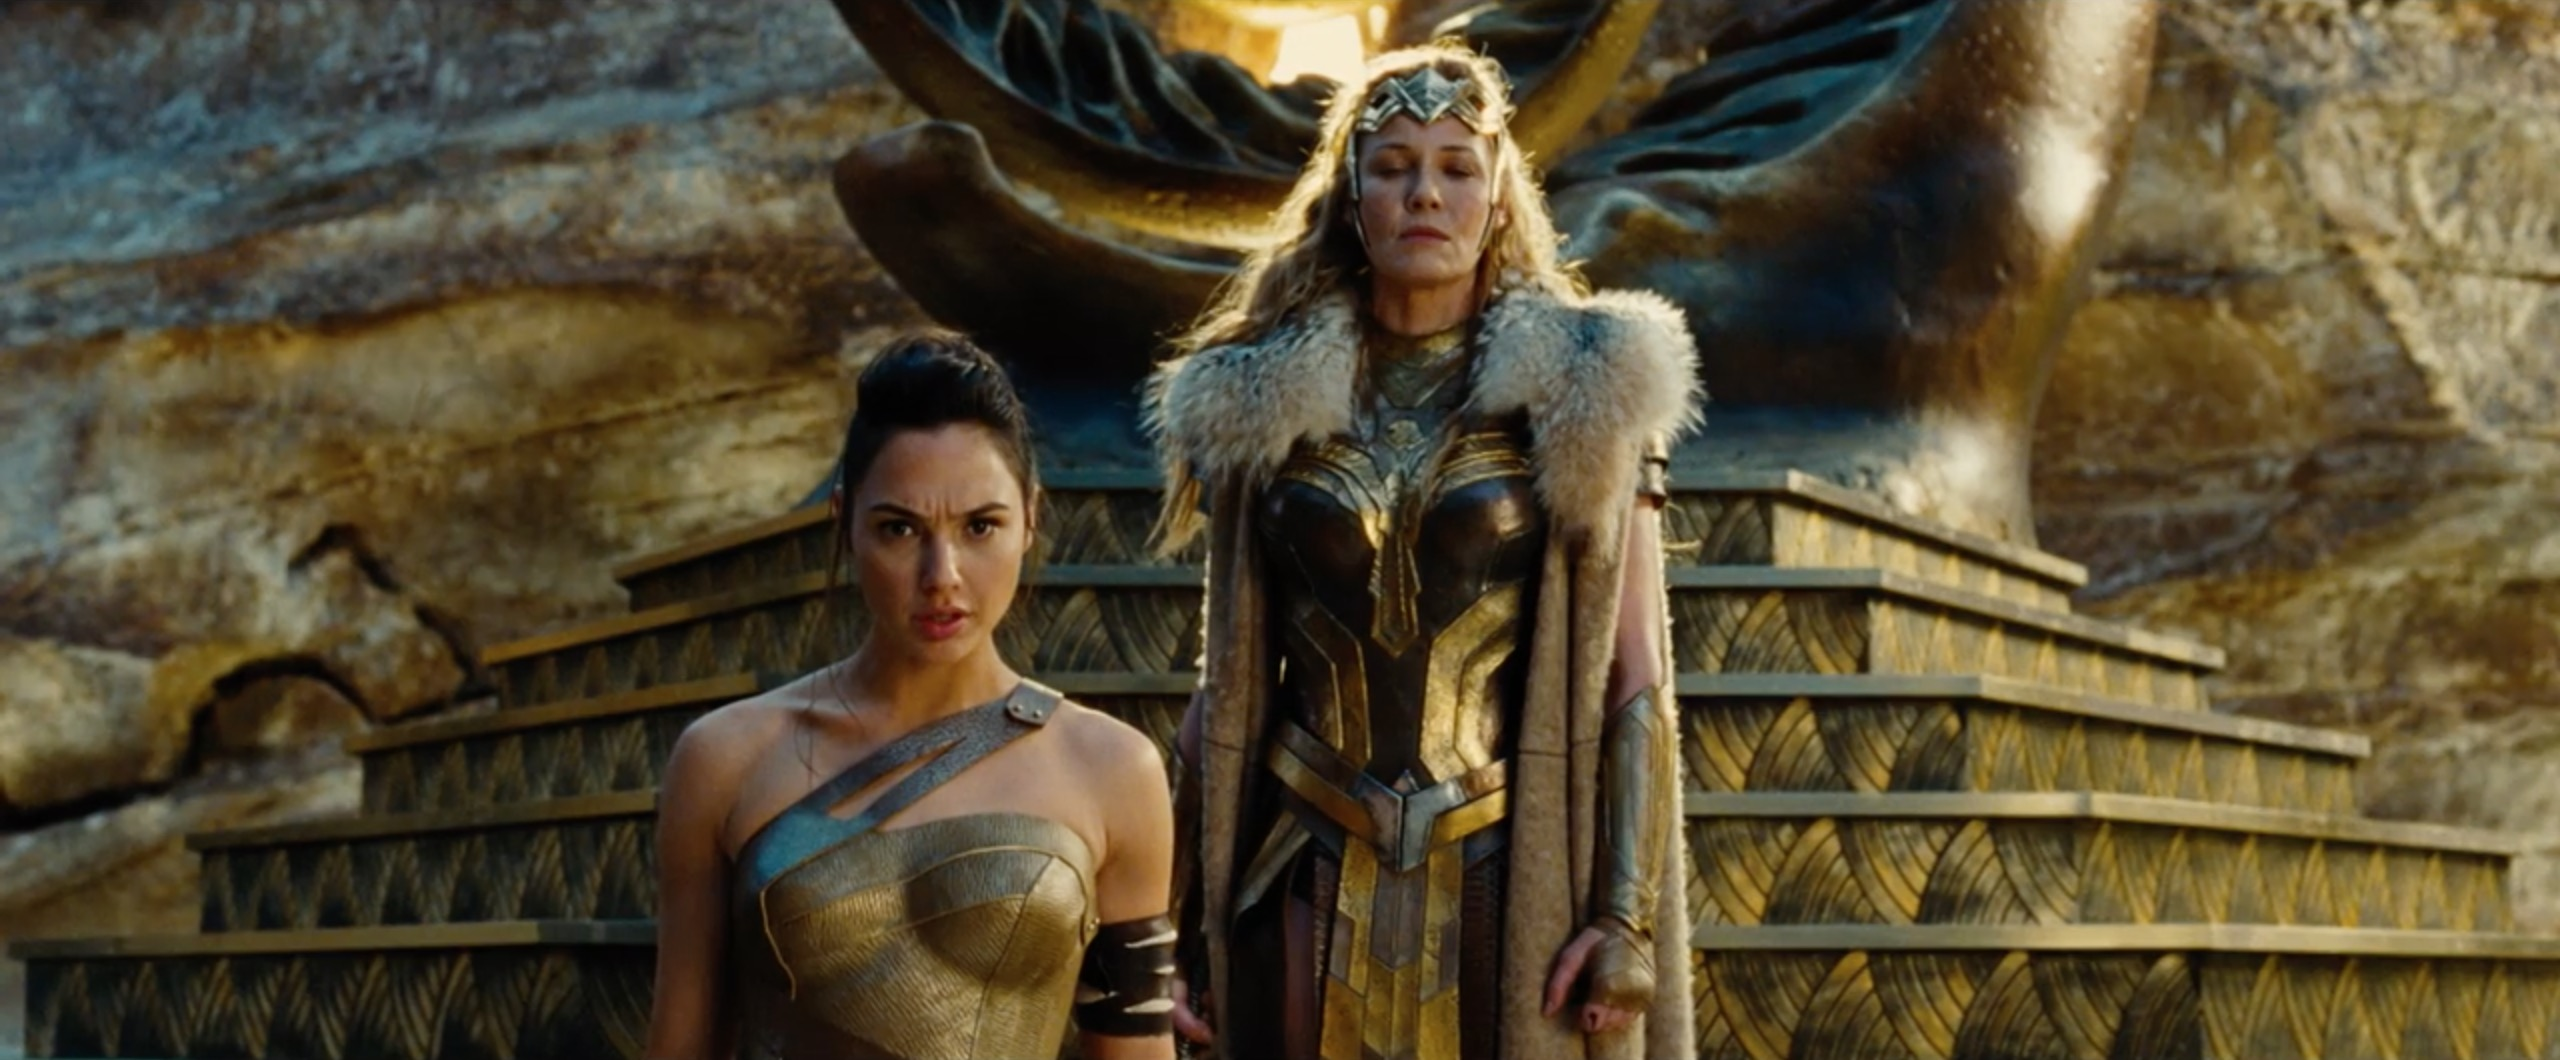 'Wonder Woman' Spin-Off Focusing on Amazons of Theyscira May Be in Development